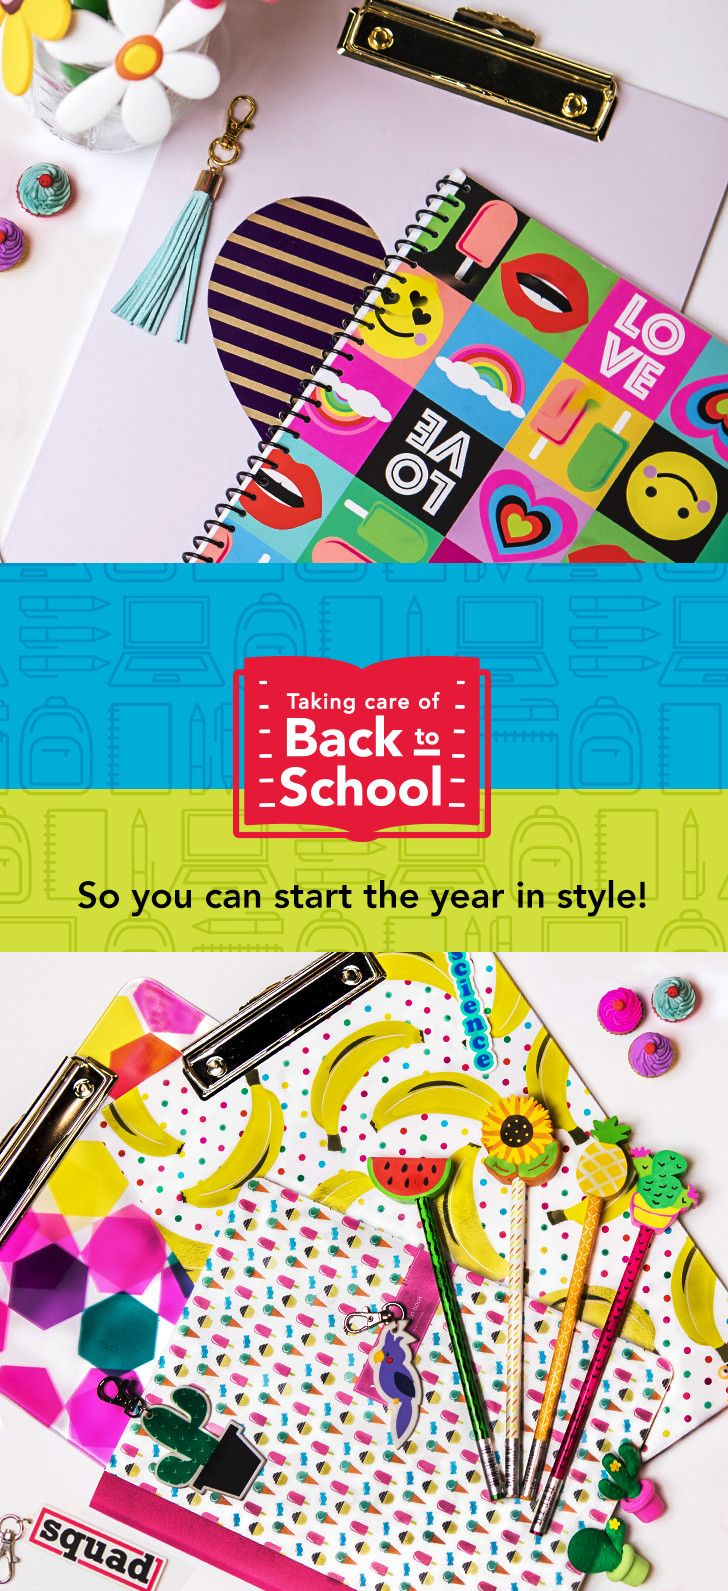 A great school year begins with us! Keep your kid organized with the coolest Back to School supplies, like Themed Pencil Toppers, a Pink Heart Clipboard, emoji notebooks and more! Looking for summer activities? Here's a cute craft idea: DIY your decorations together! Shop the best in Back to School at Office Depot®.